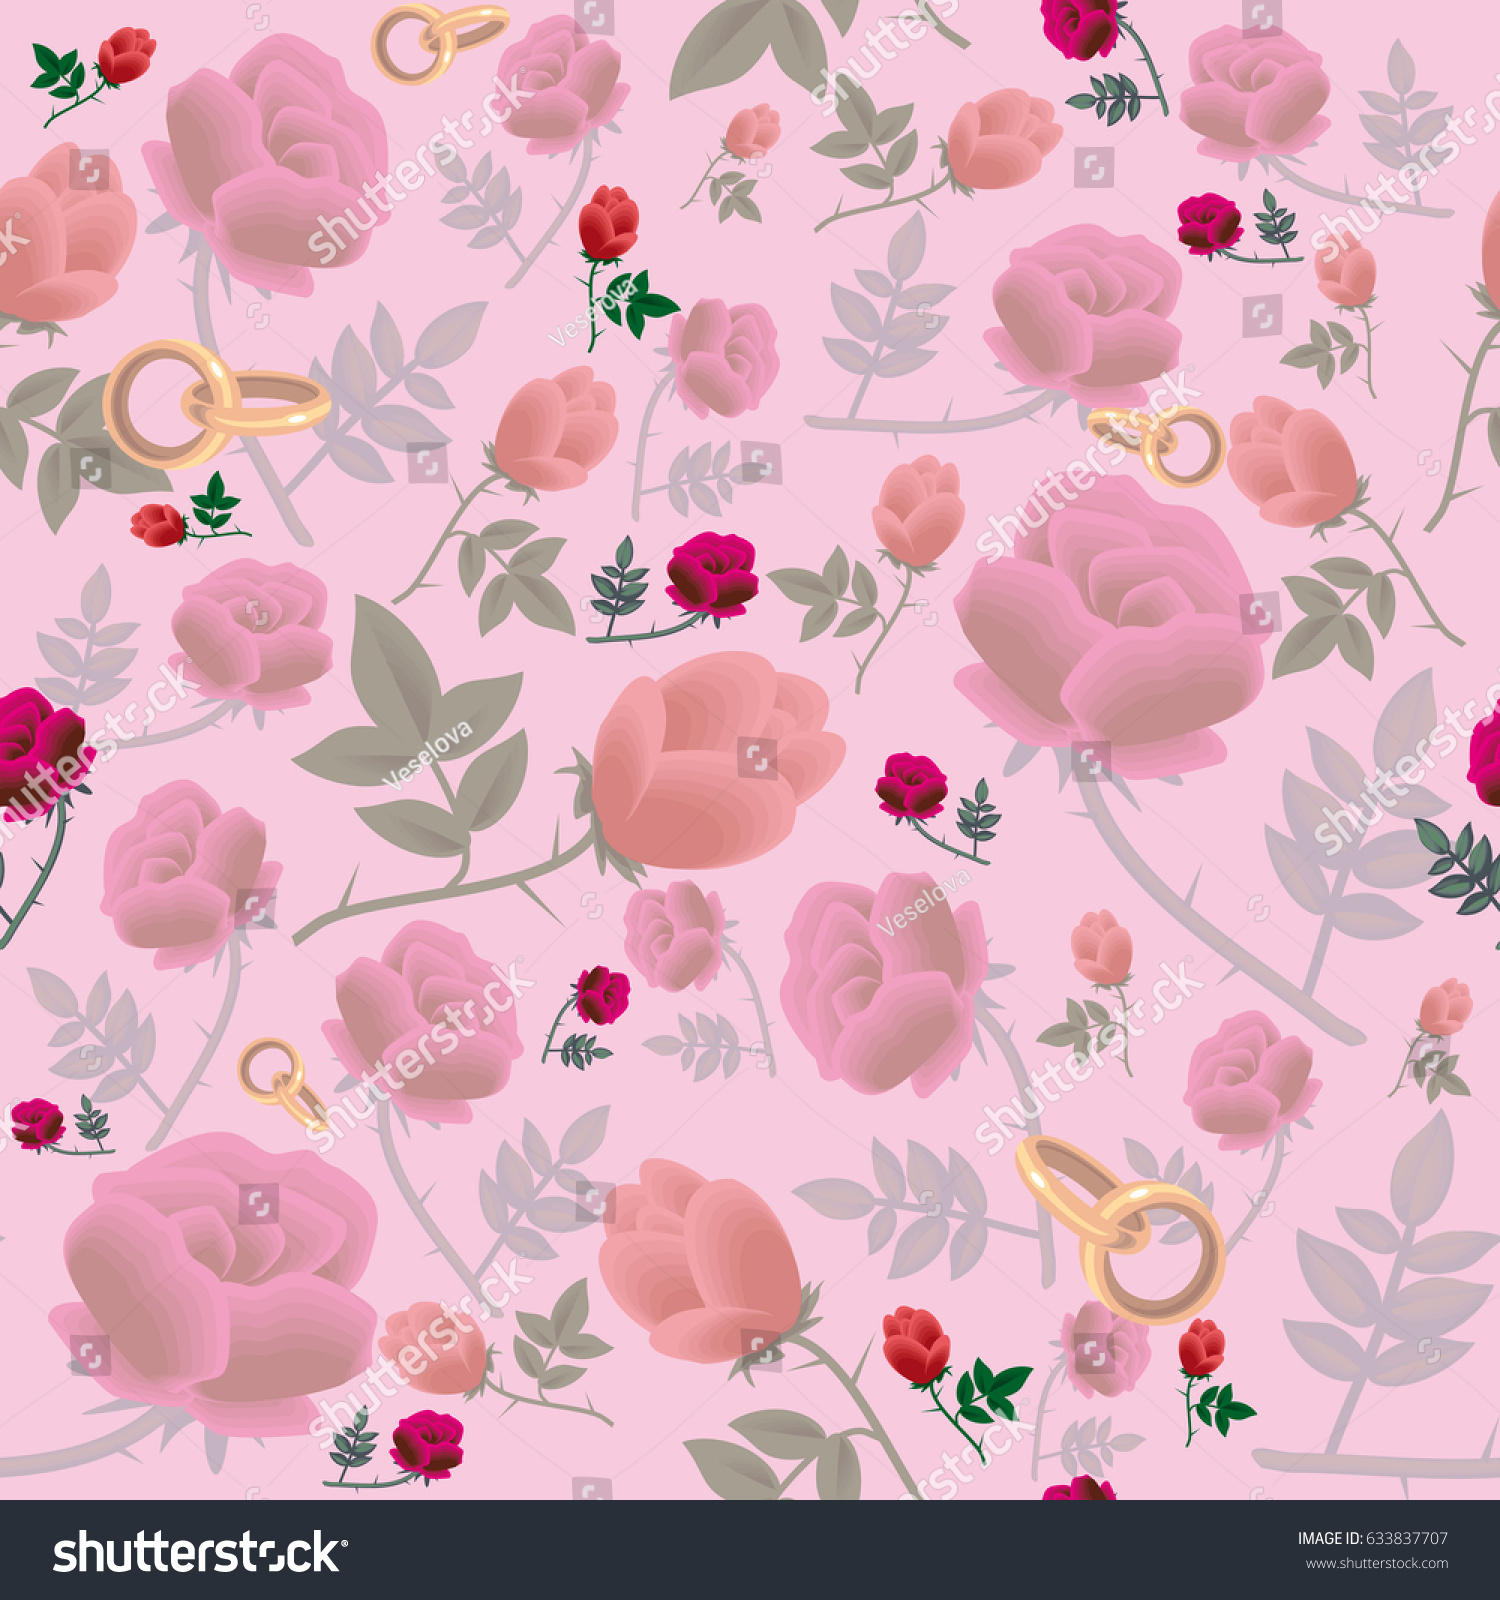 Seamless Texture Pink Color Flowers Wedding Stock Vector 633837707 ...